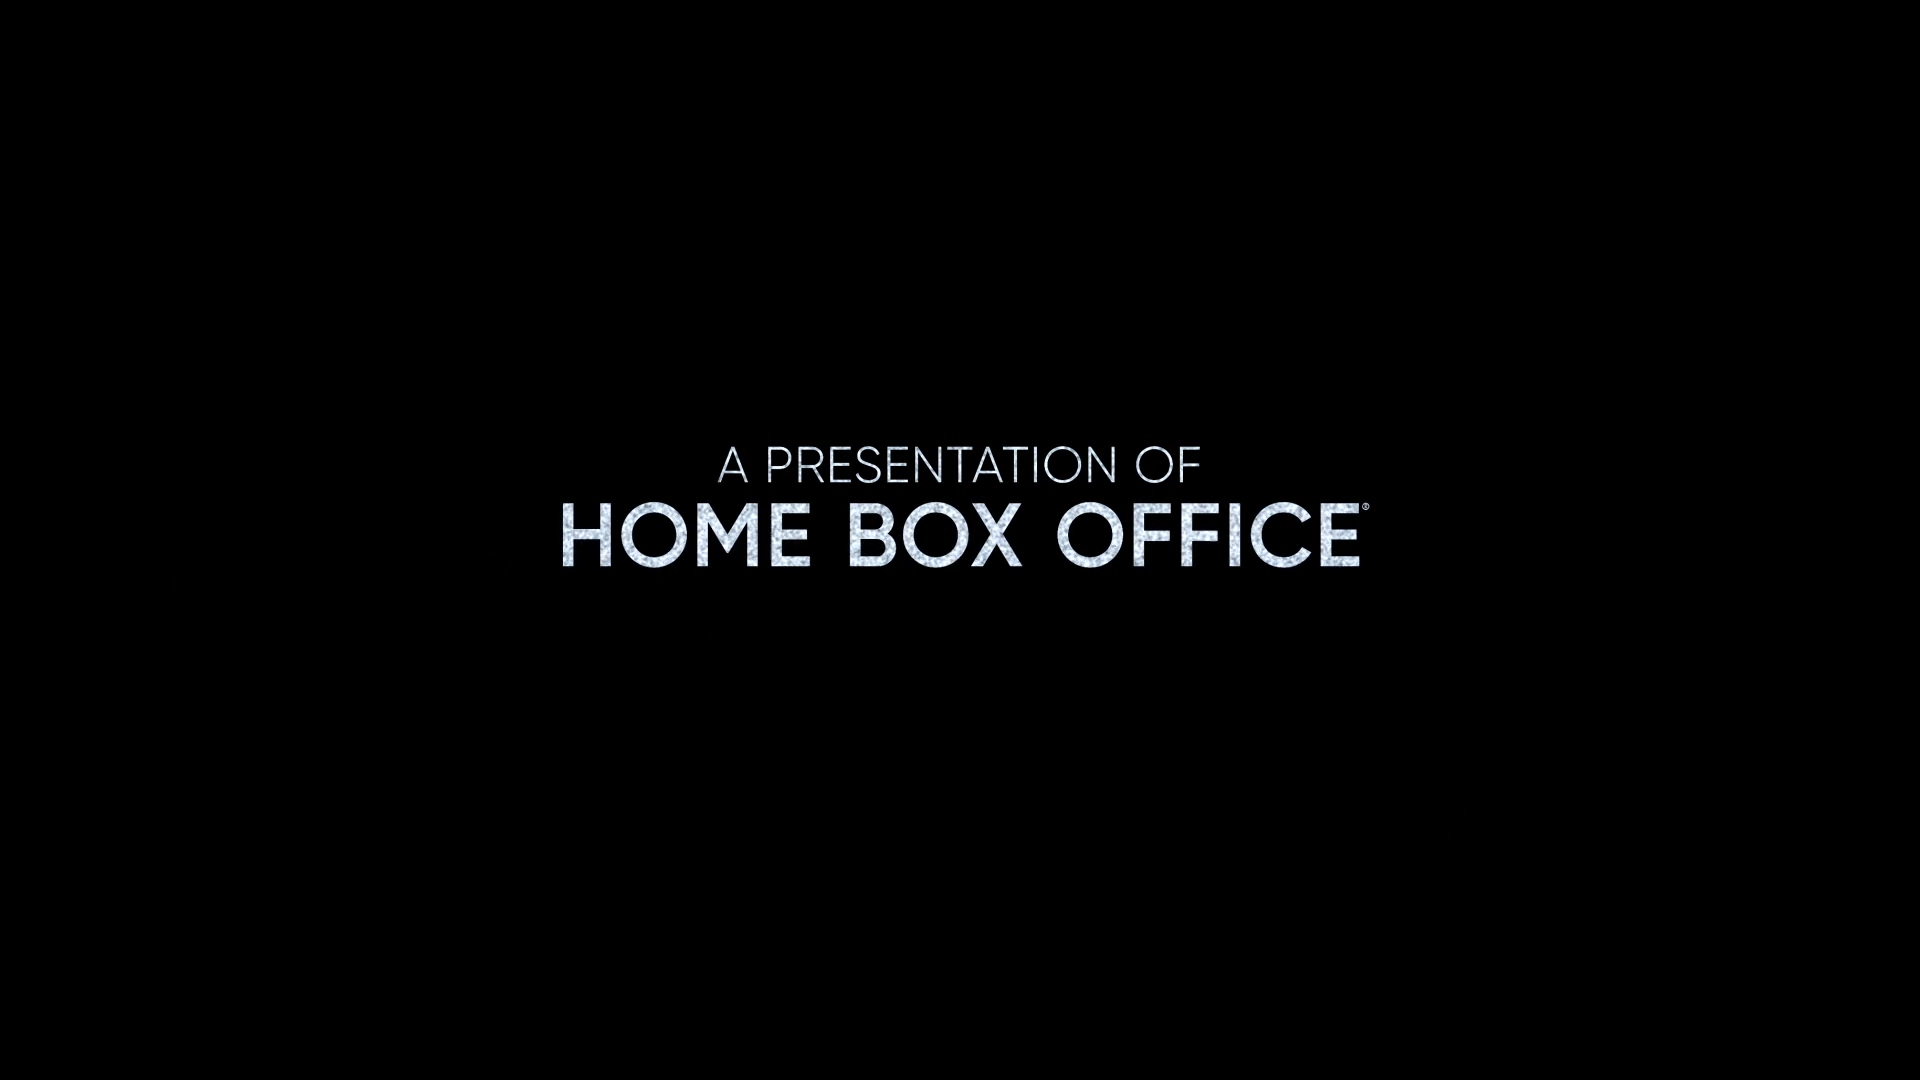 Home Box Office (2018) (Closing)